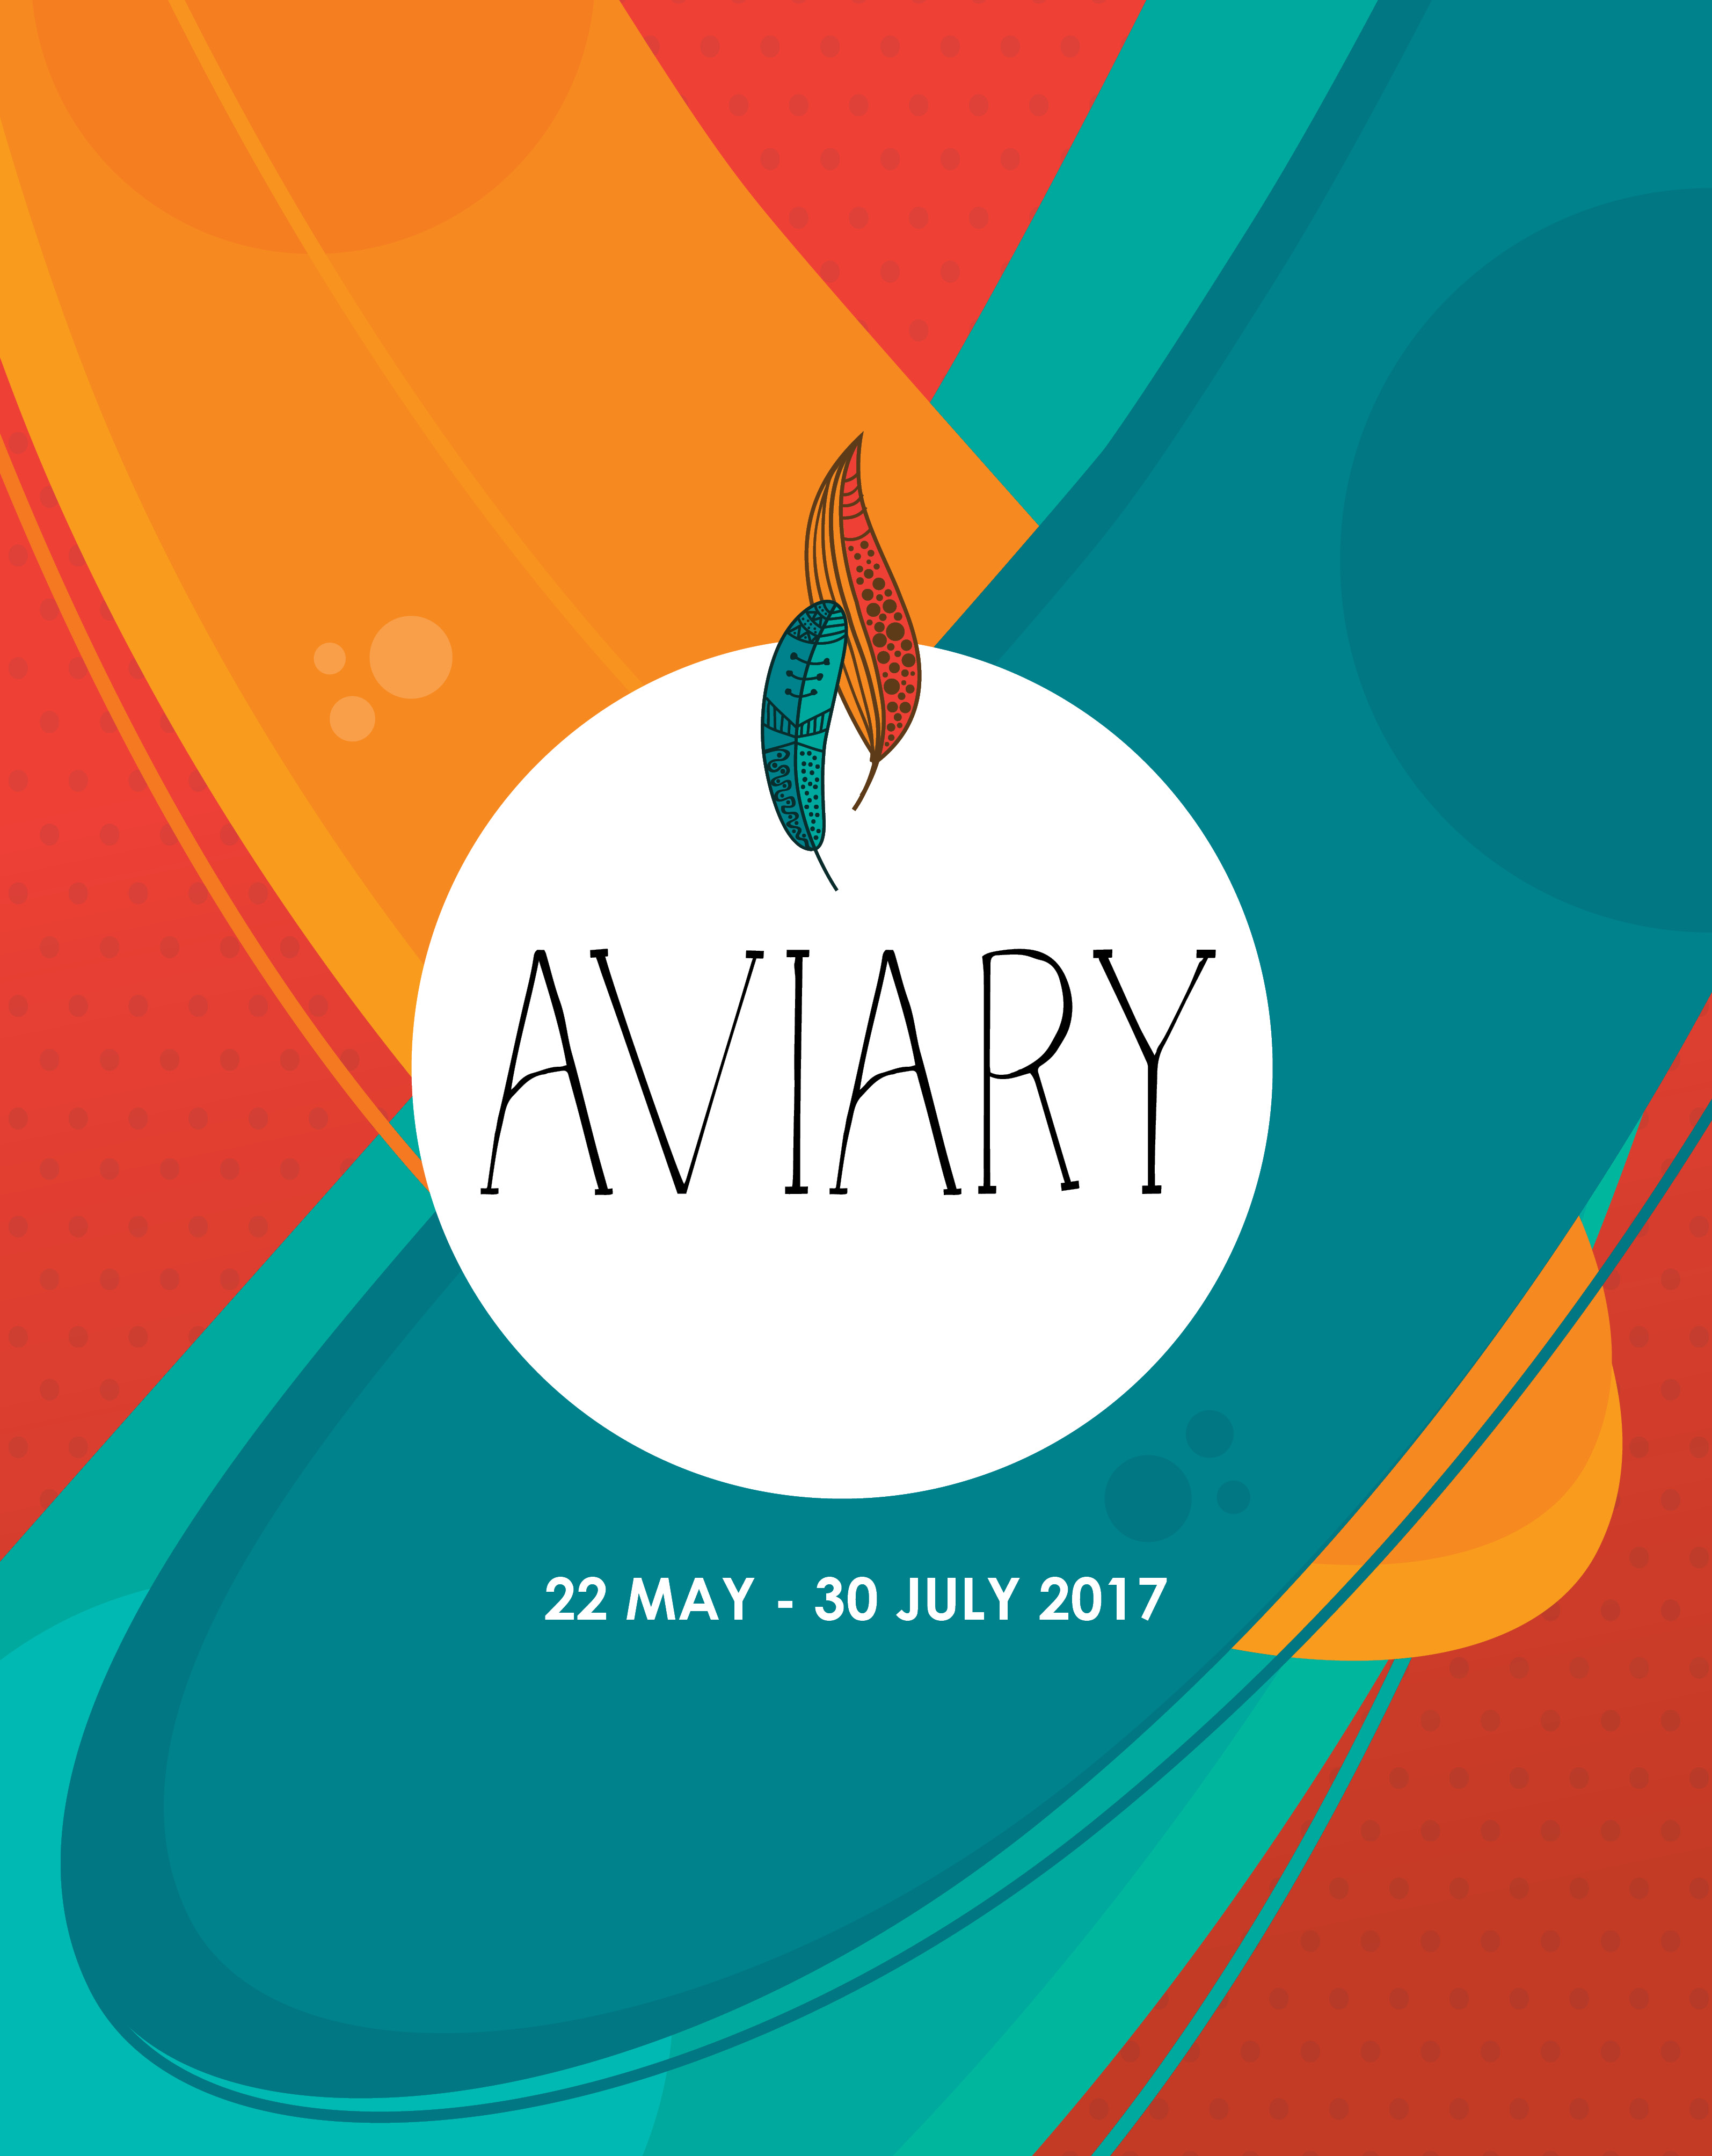 Aviary online catalogue